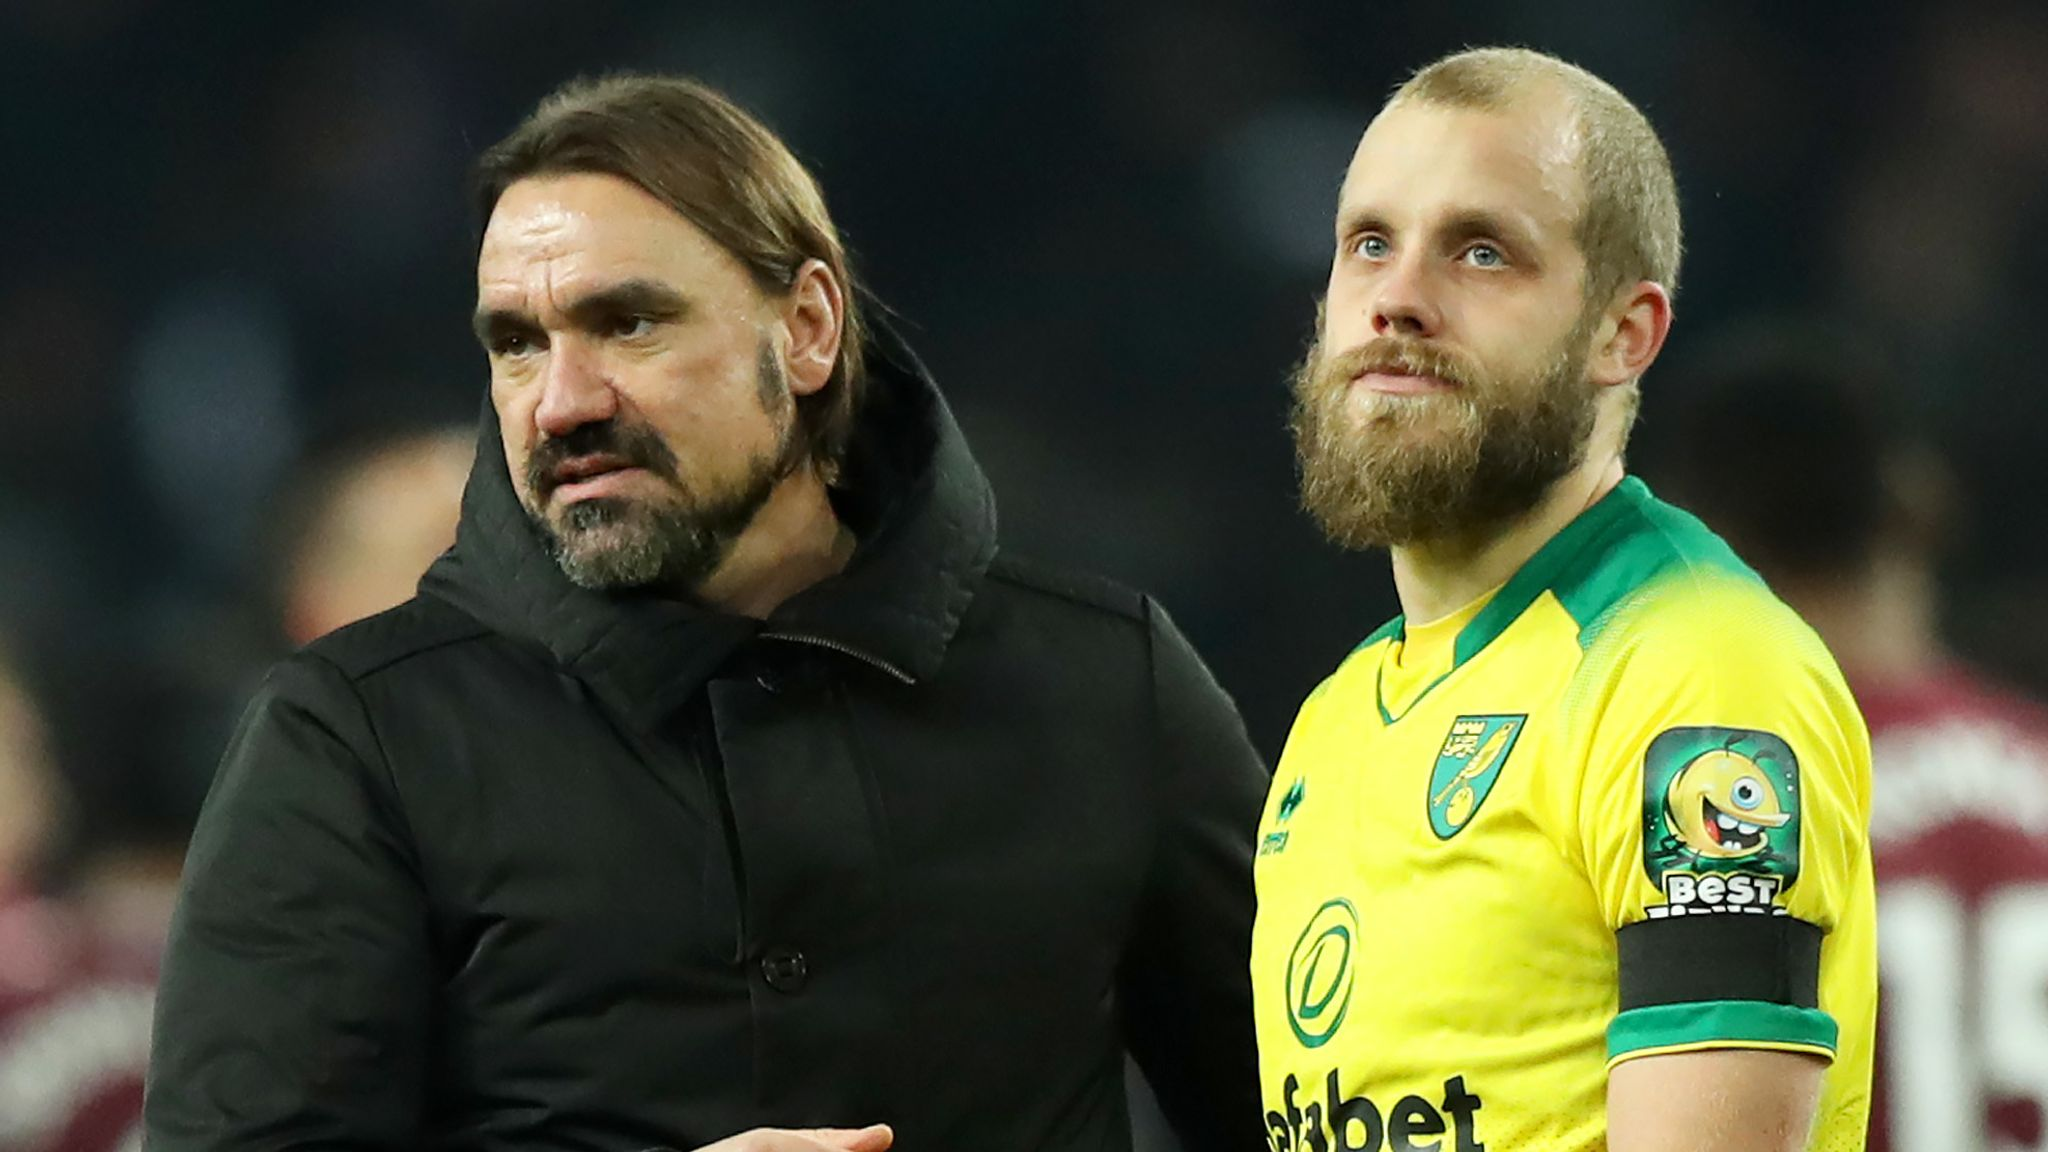 Daniel Farke: Norwich City will not be panic-buying in January transfer window